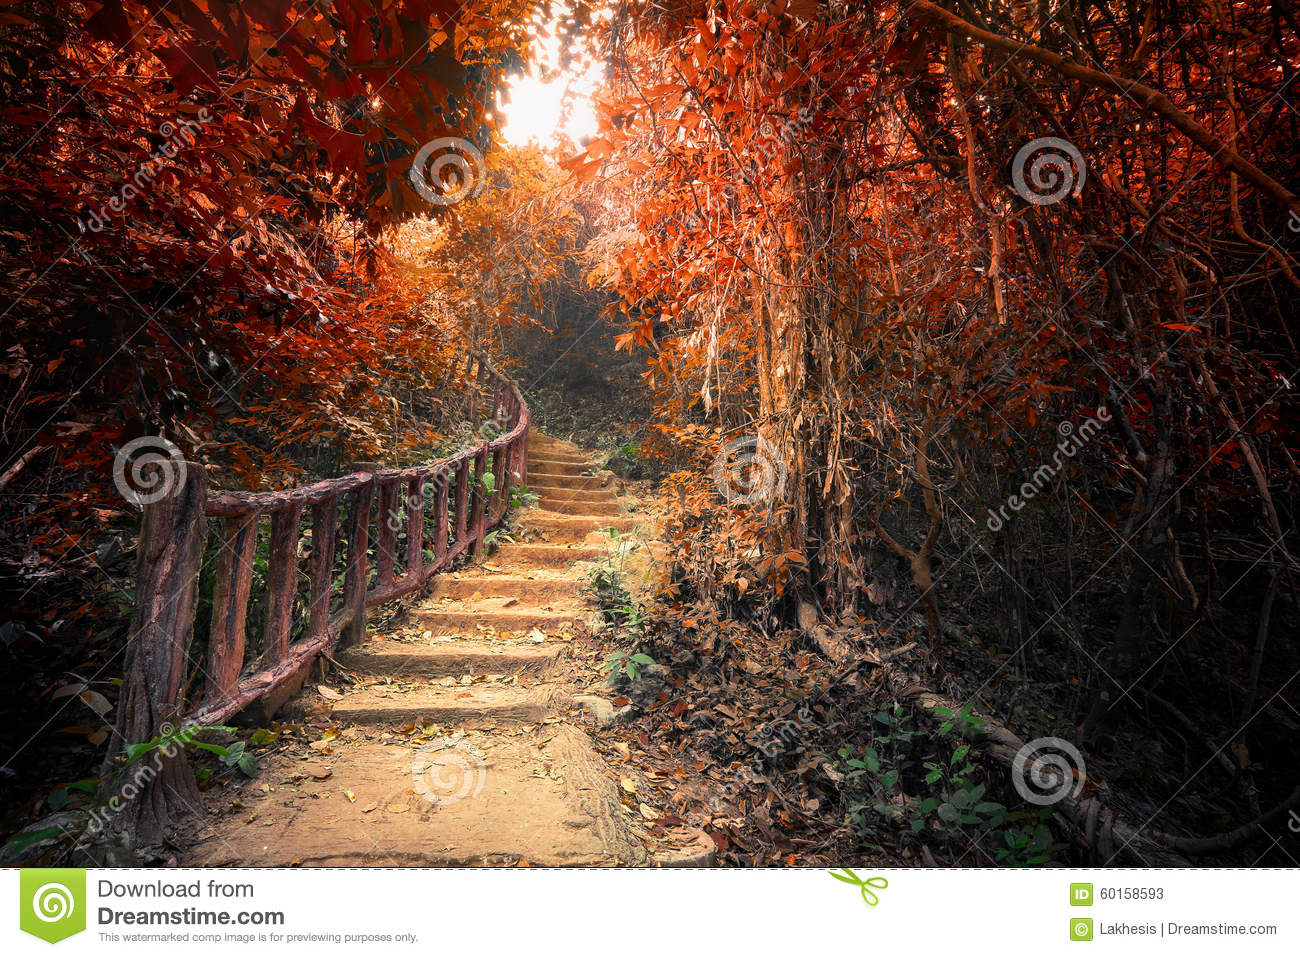 Fall Scene Desktop Wallpaper Fantasy Autumn Forest With Path Way Through Dense Trees